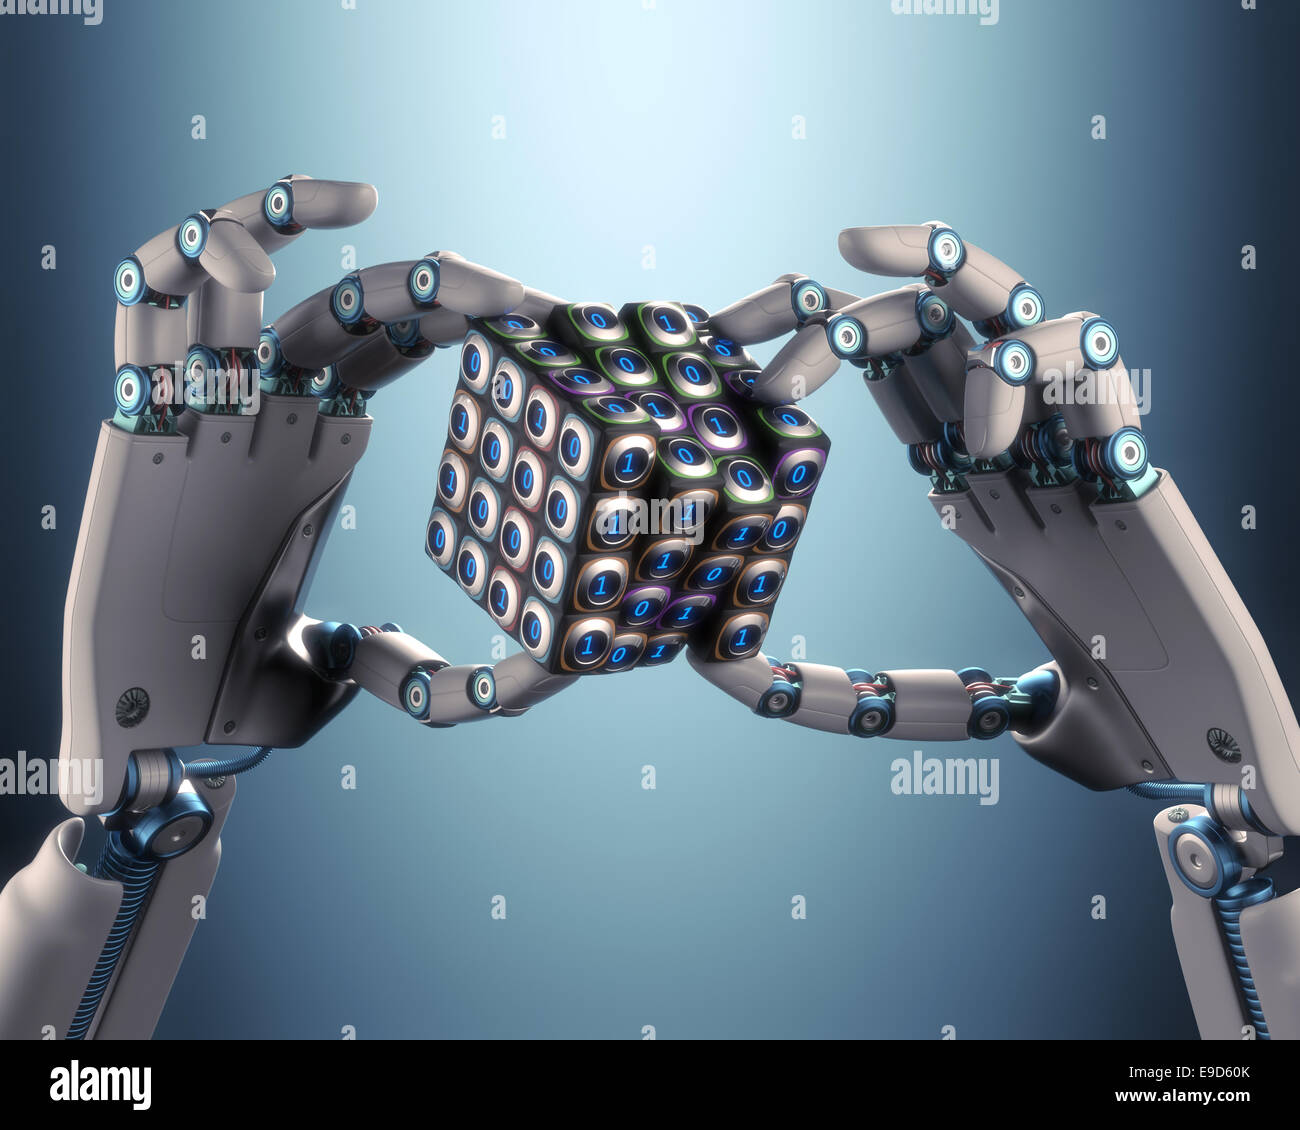 Robot hand holding a binary cube concept of logical processing. Clipping path included. - Stock Image